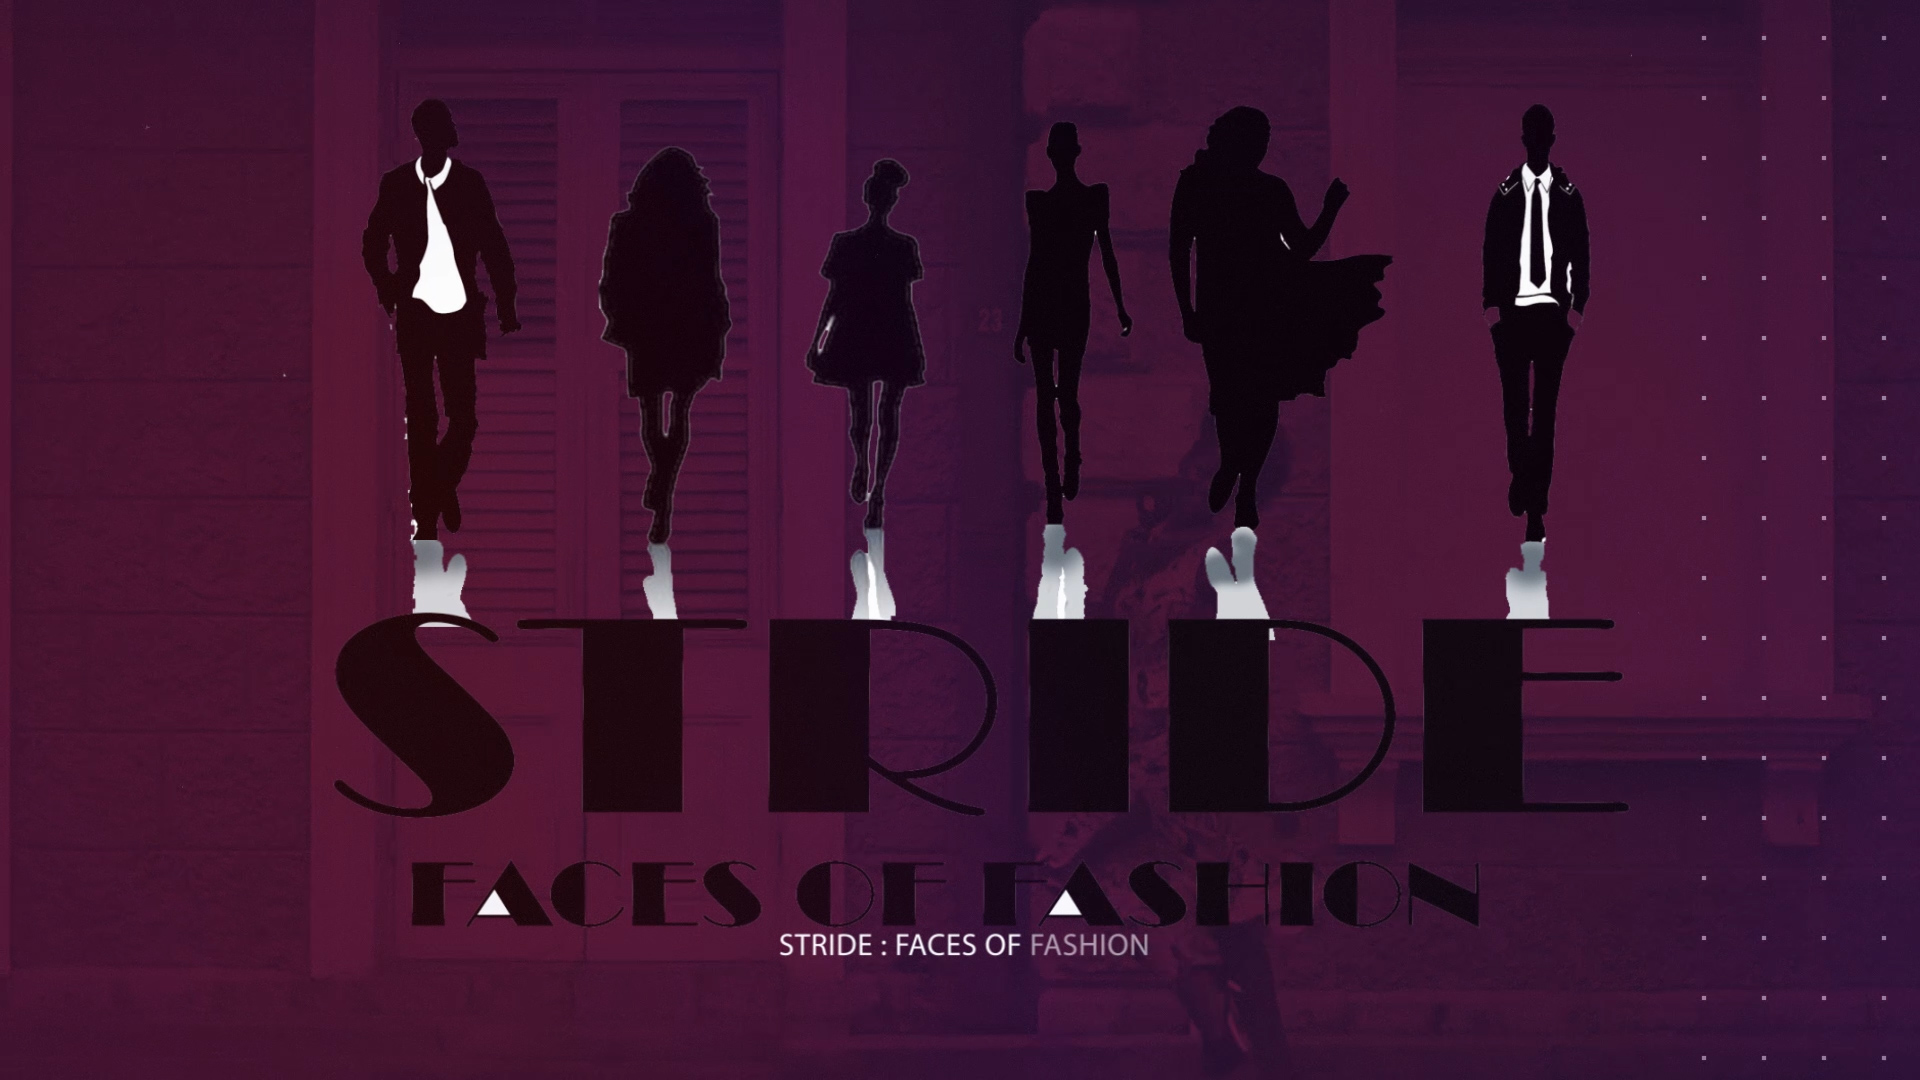 Stride: Faces of Fashion